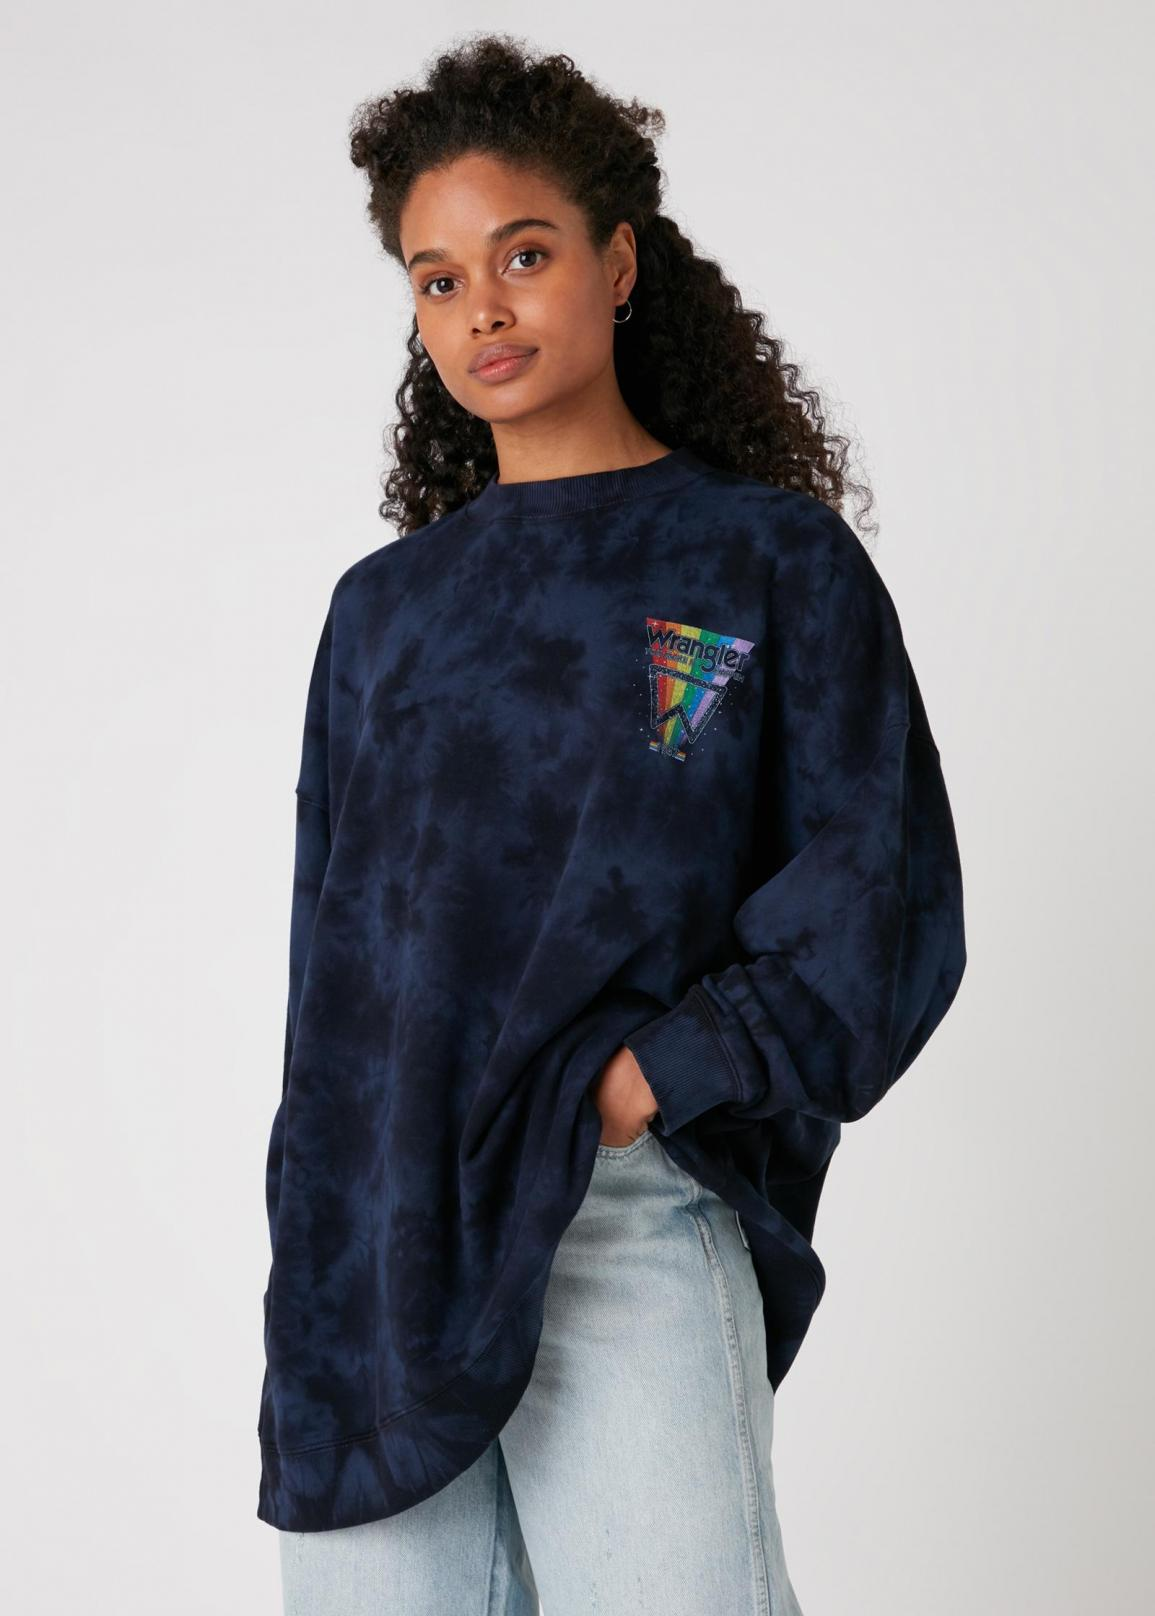 Wrangler® Oversized Sweater - Navy Irregular Dye